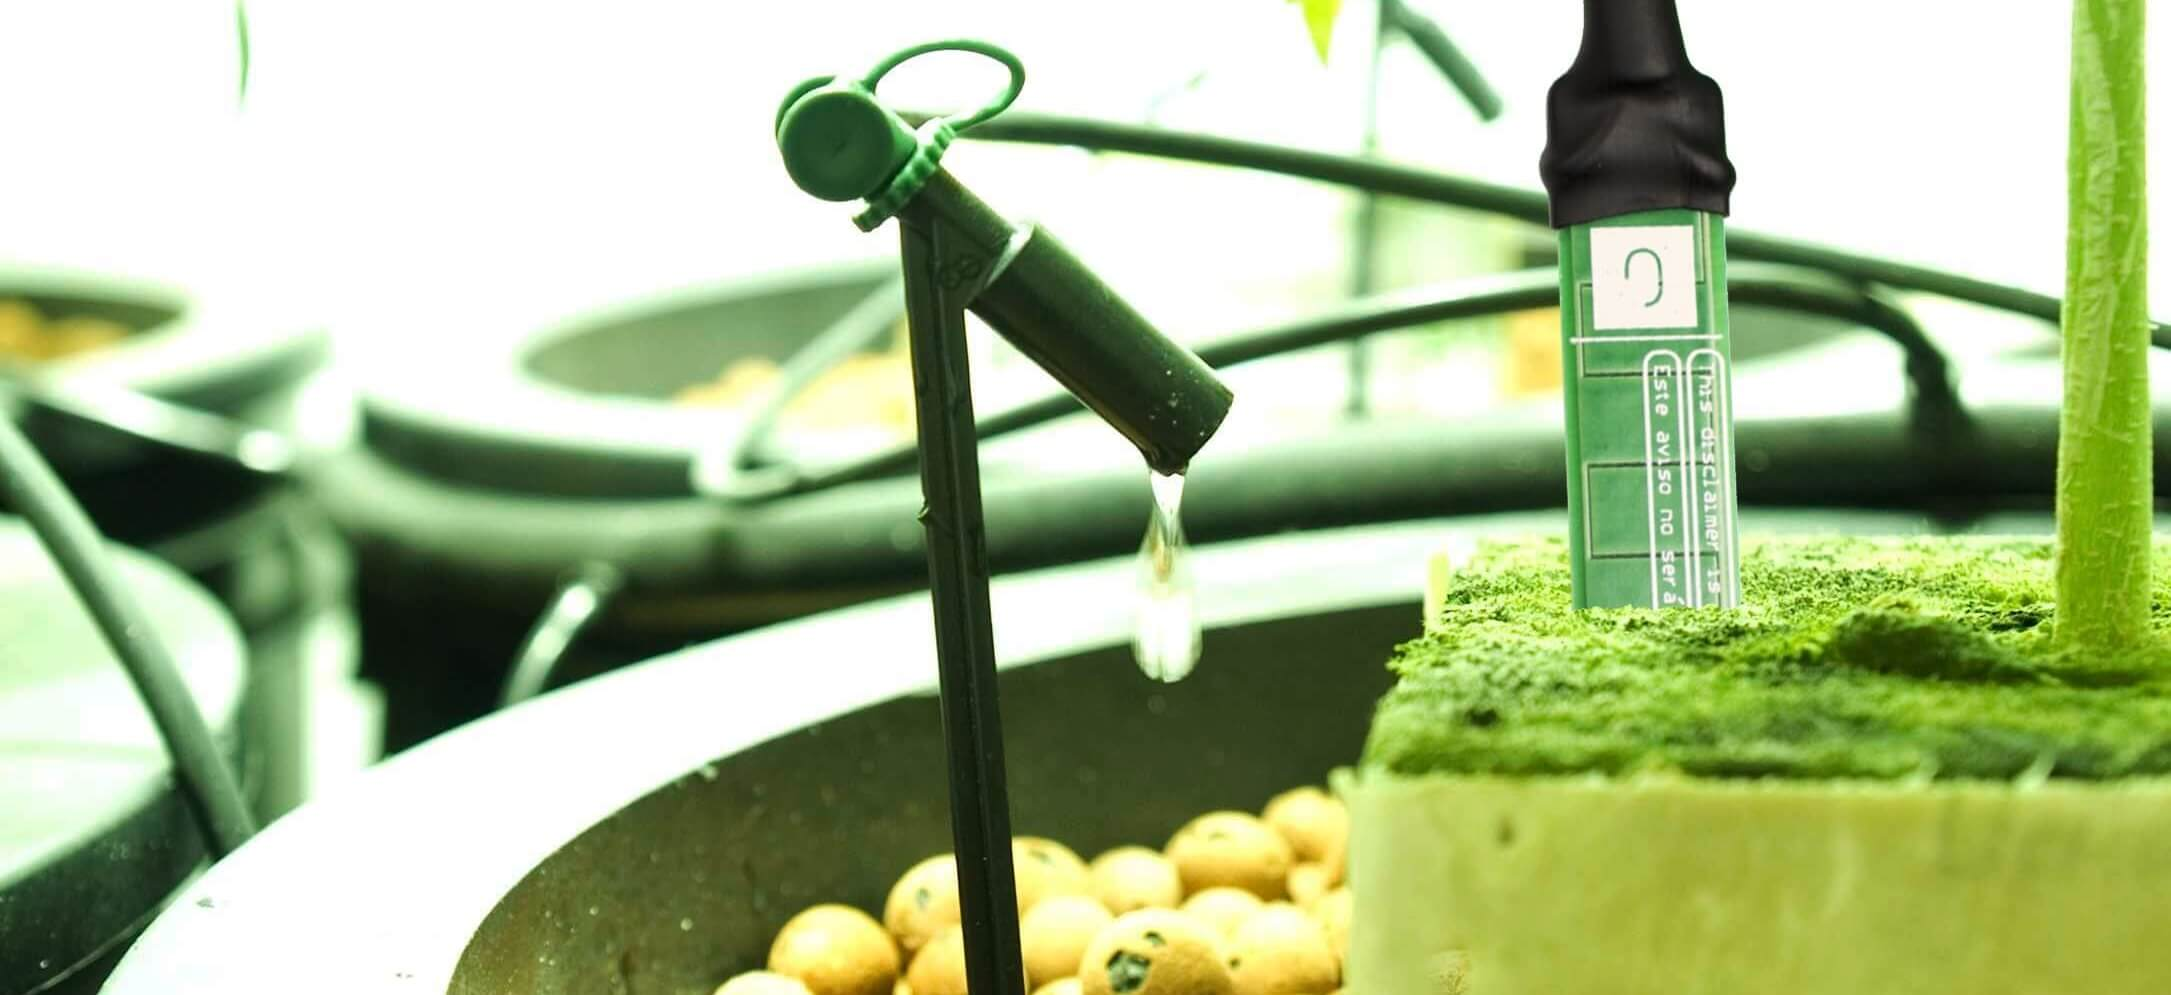 Front view of a plants pot with drip irrigation system and the GroLab™ SoilBot Moisture Sensor inserted on the substrate